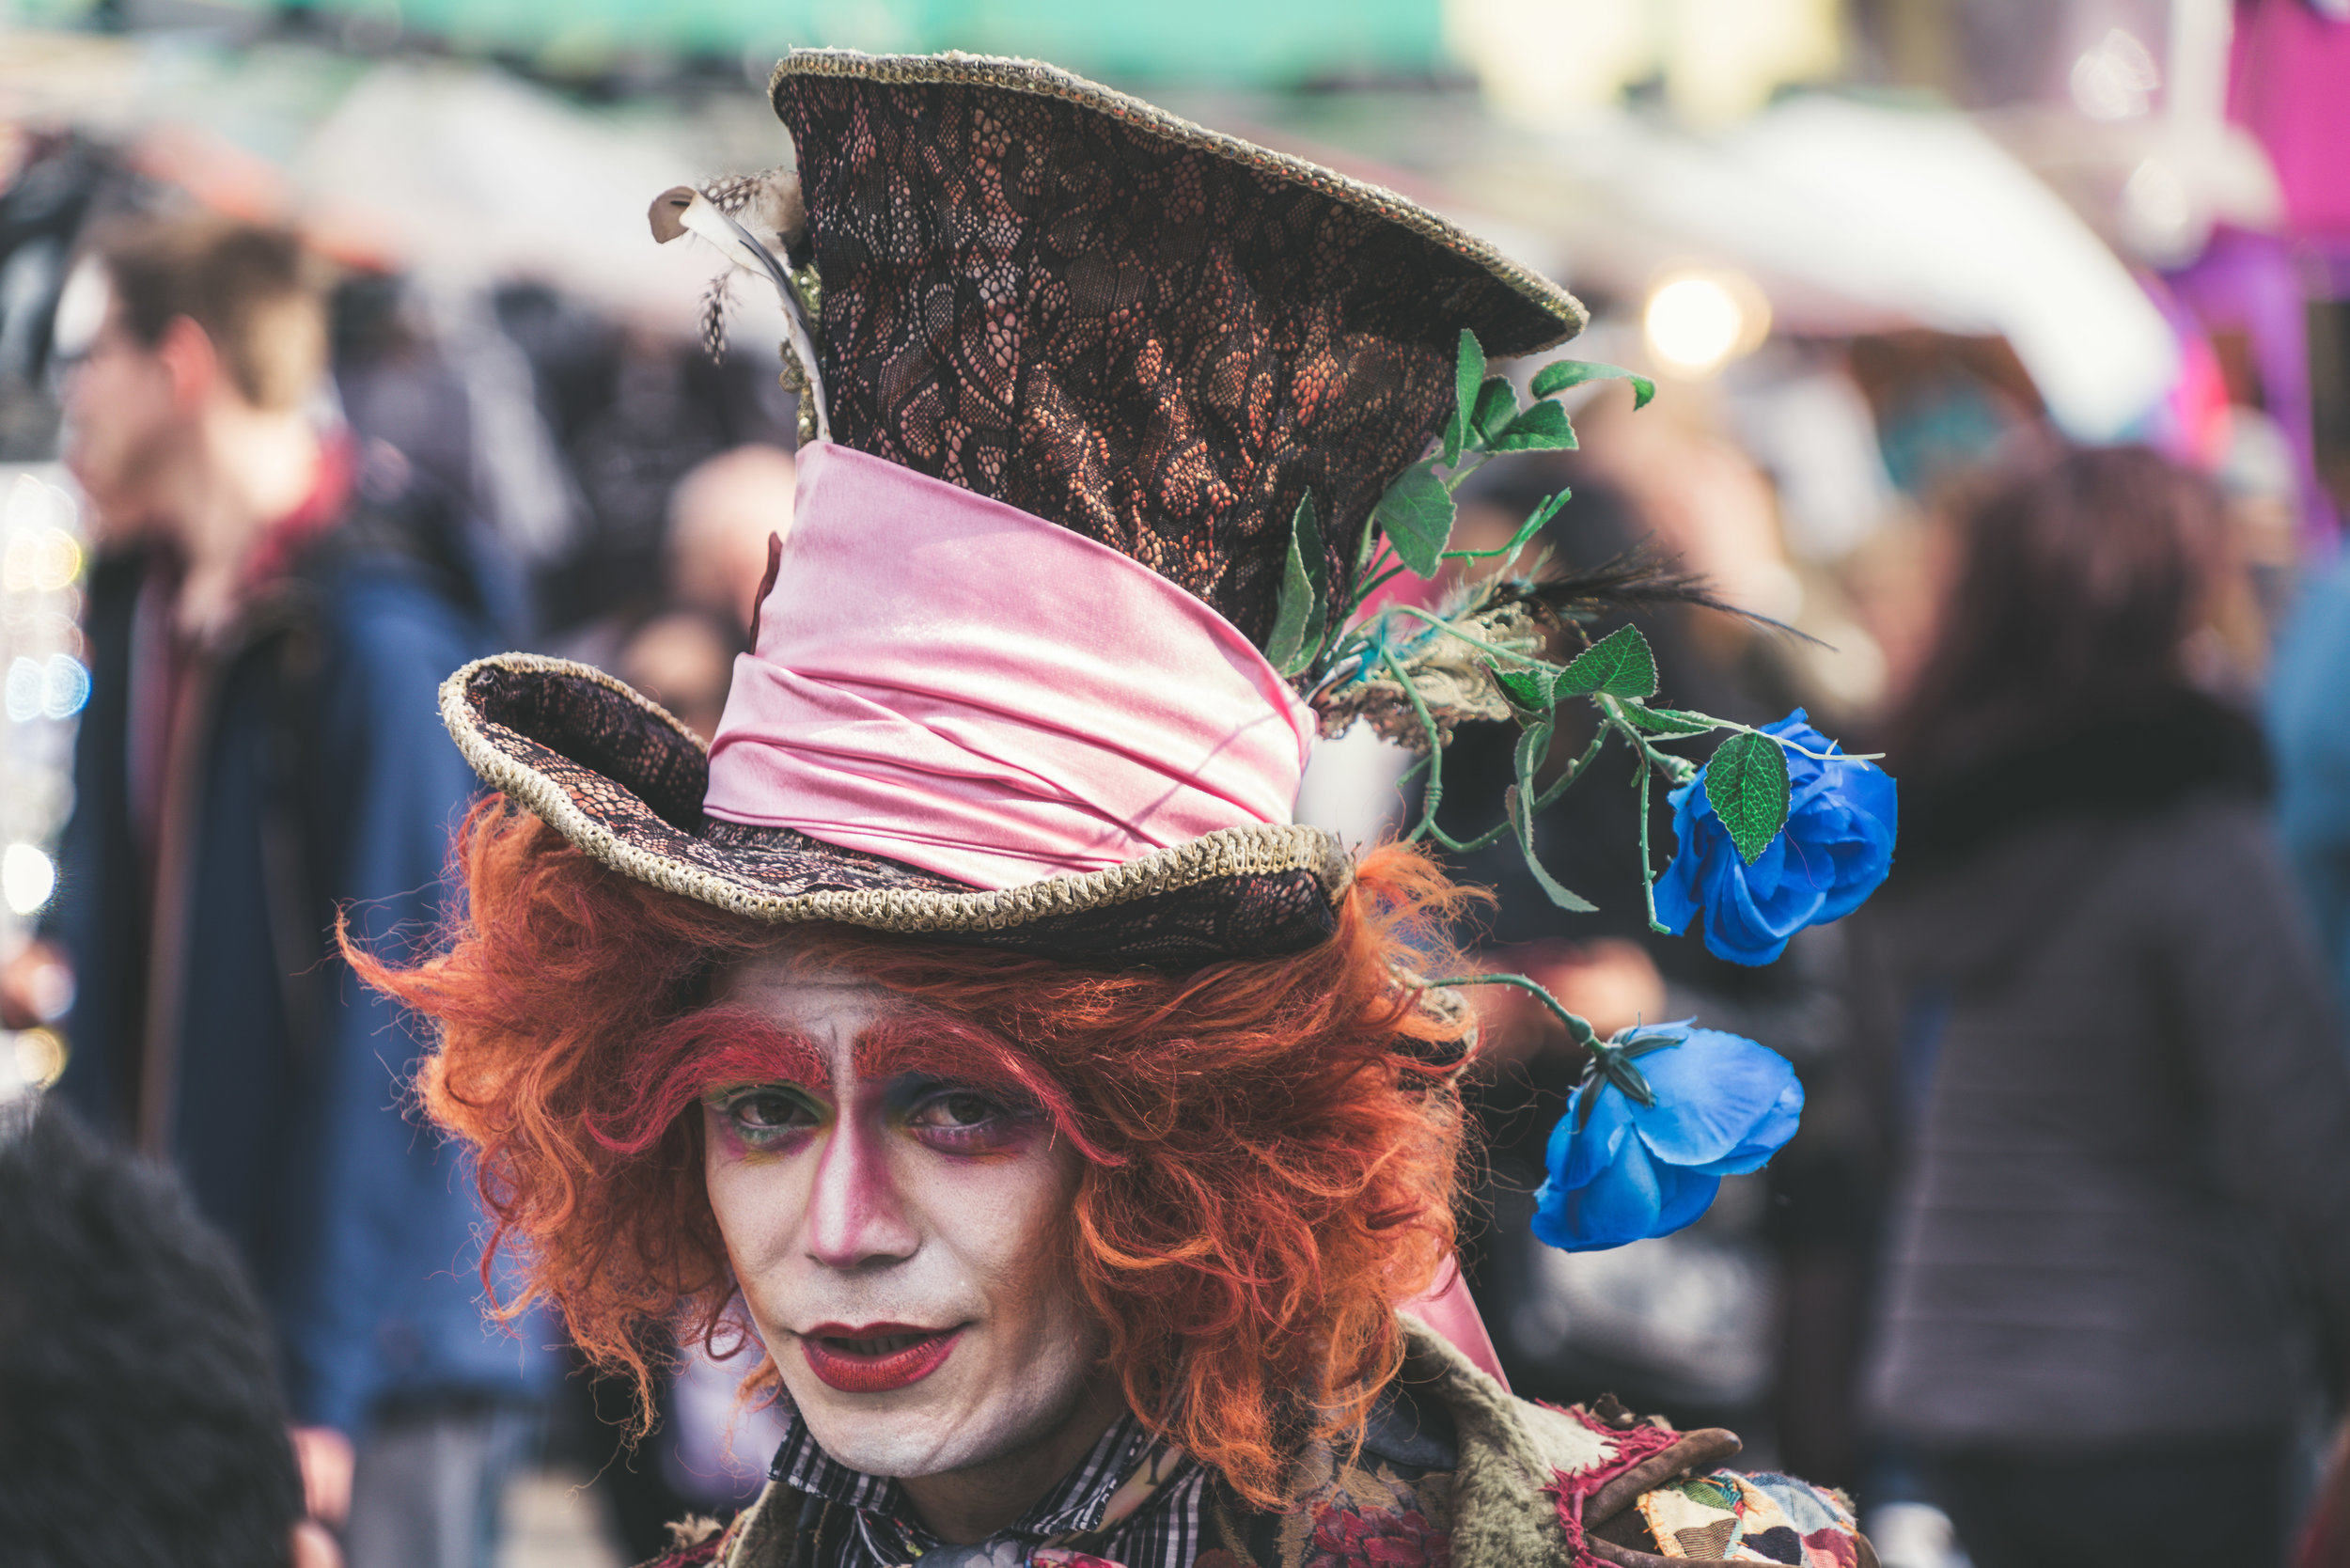 The Mad Hatter in Alice's Adventures in Wonderland by Lewis Carroll